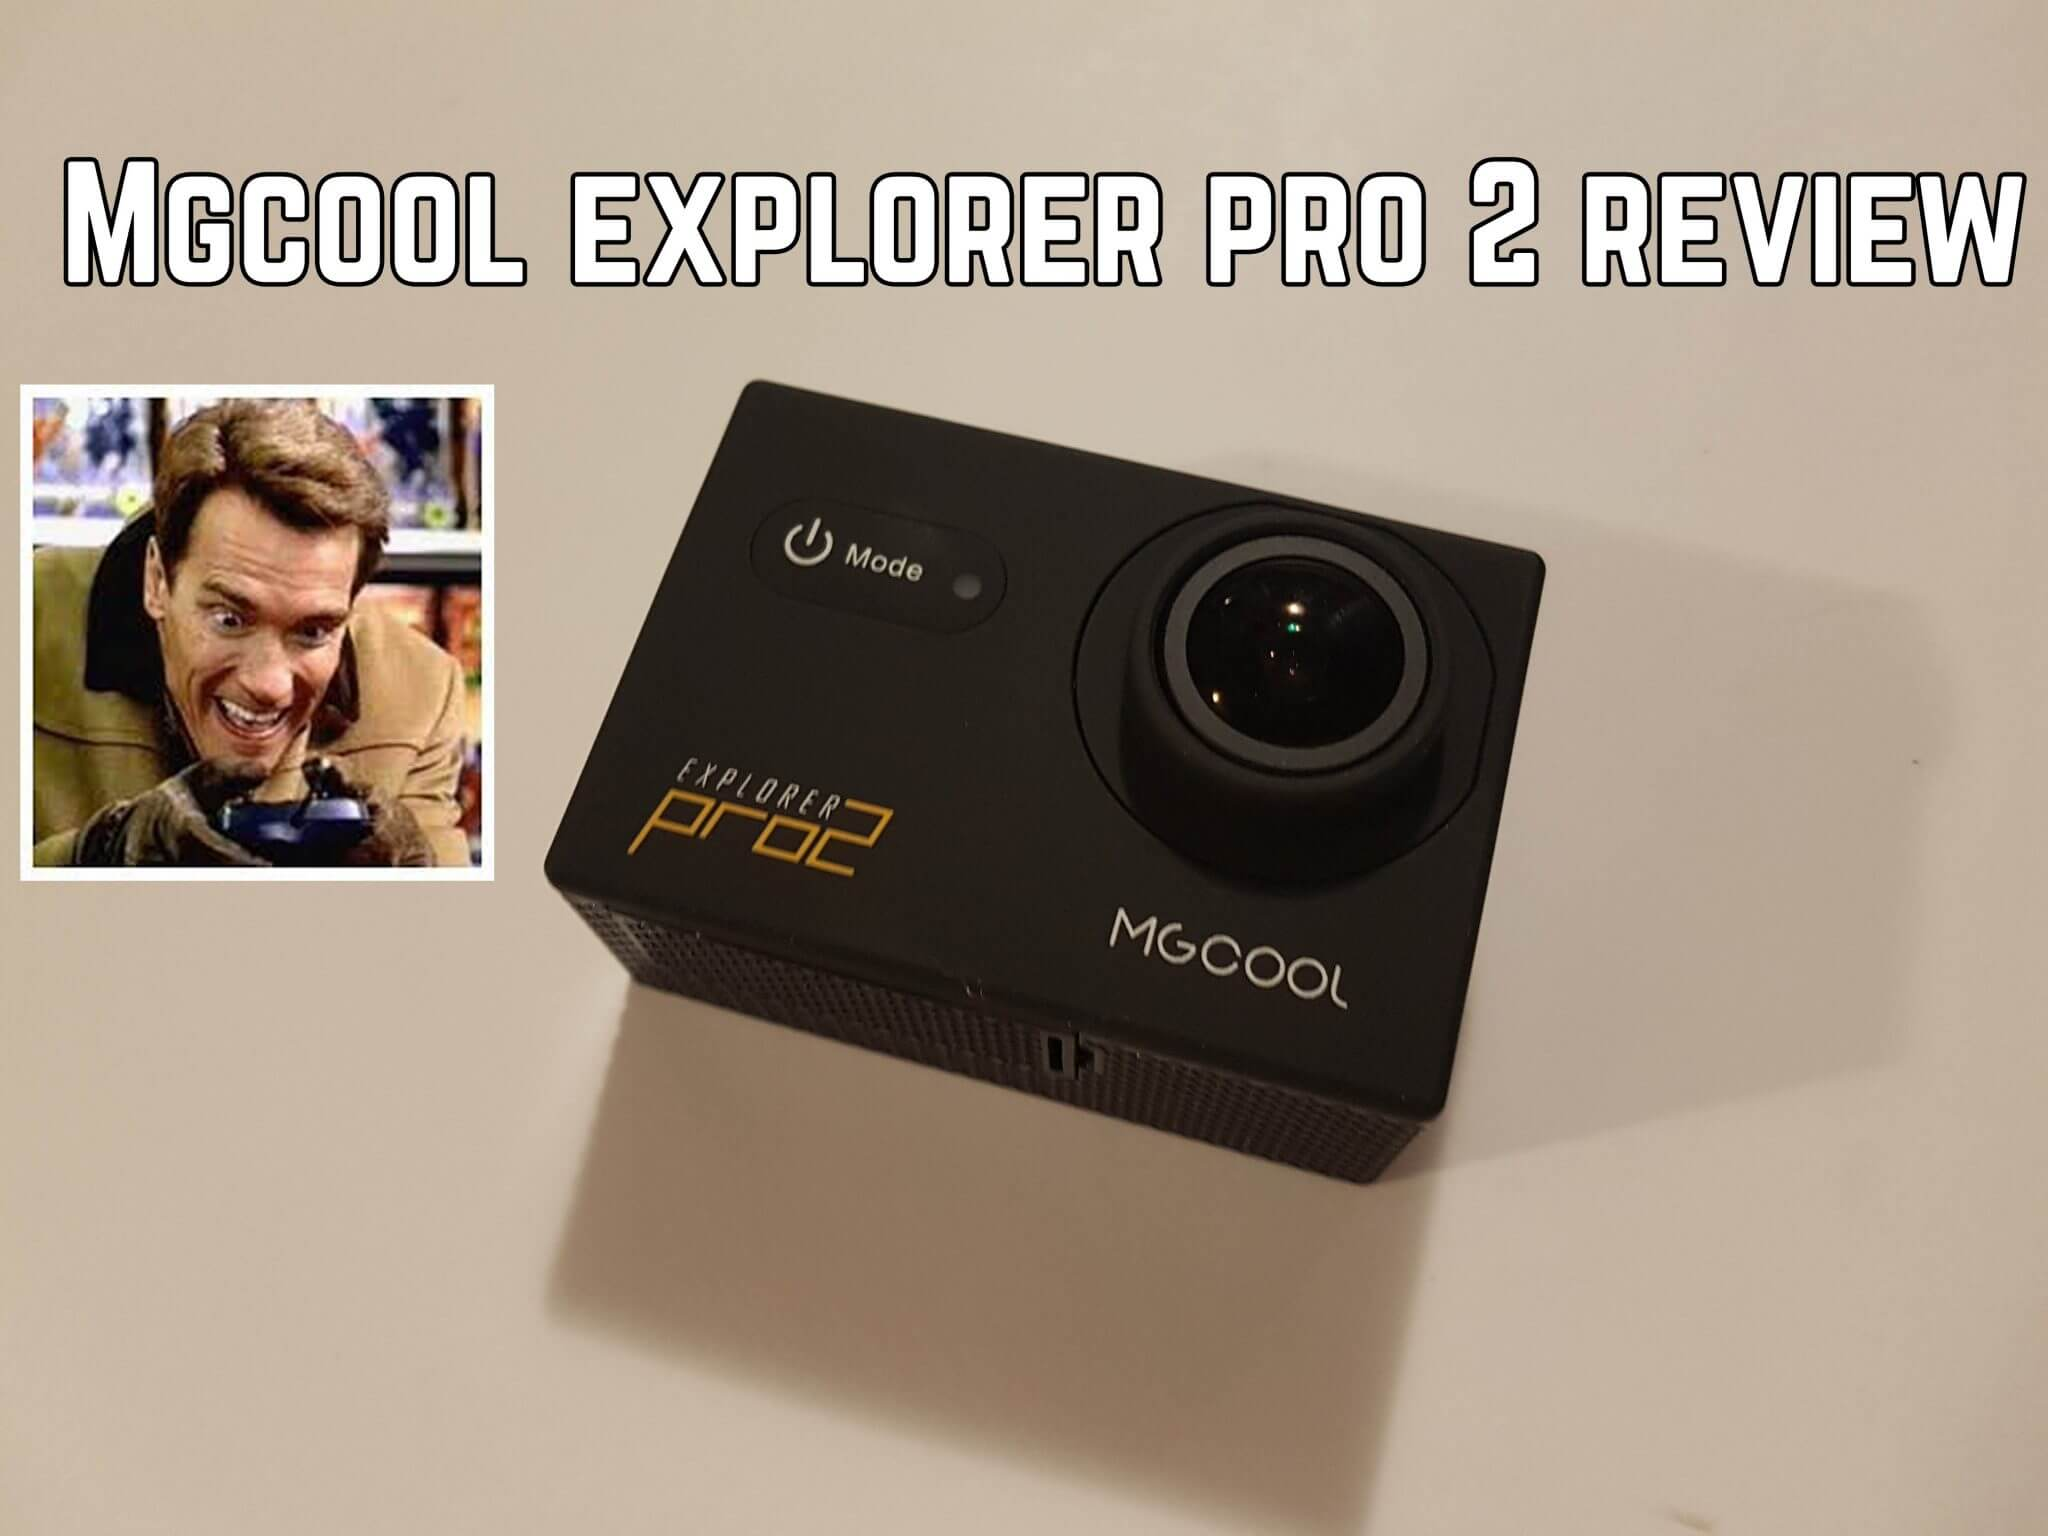 Mgcool explorer pro 2 review